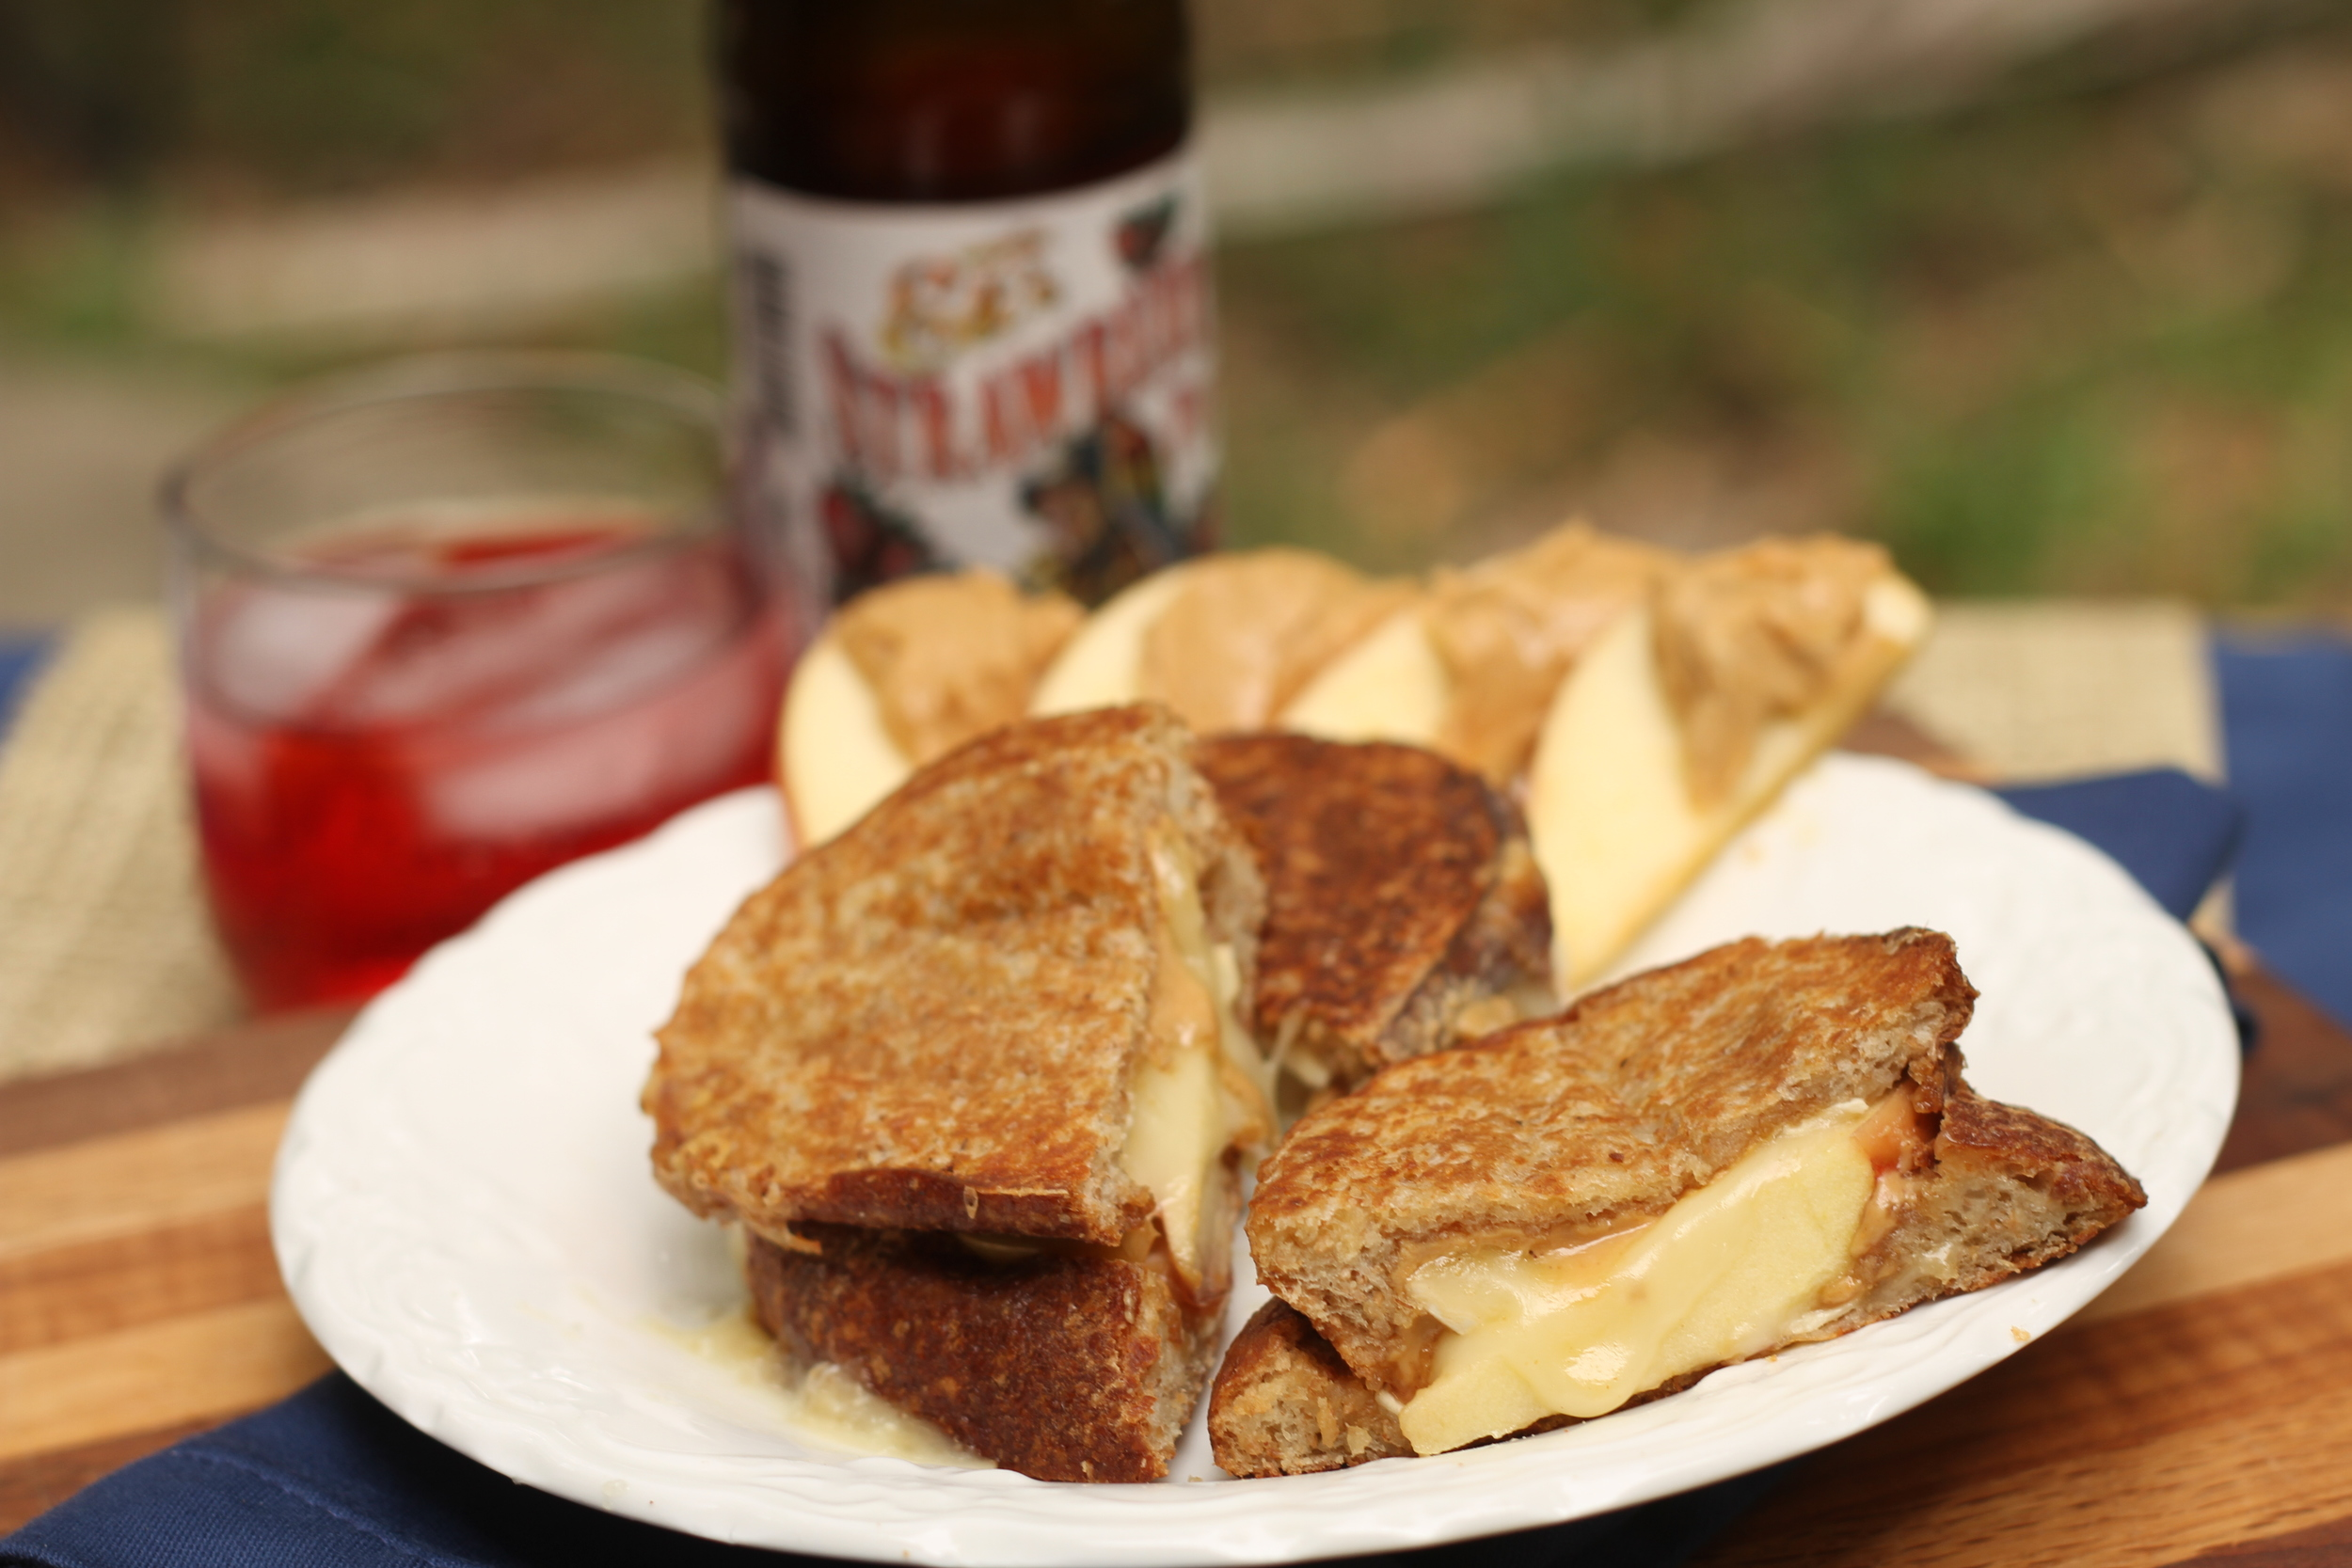 Brie Apple Honey Peanut Butter Grilled Cheese